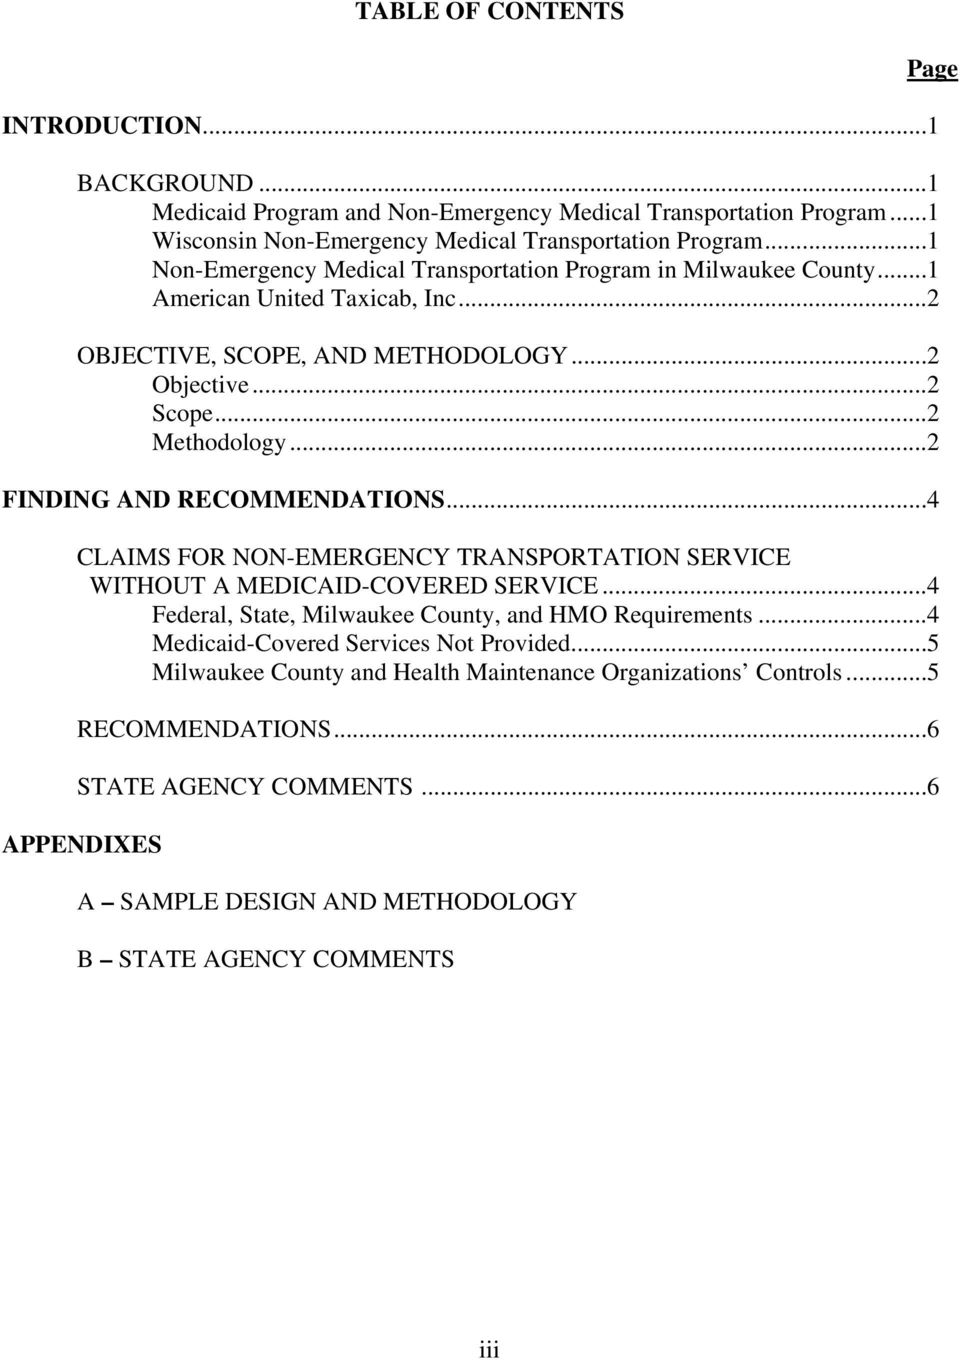 ..2 FINDING AND RECOMMENDATIONS...4 CLAIMS FOR NON-EMERGENCY TRANSPORTATION SERVICE WITHOUT A MEDICAID-COVERED SERVICE...4 Federal, State, Milwaukee County, and HMO Requirements.